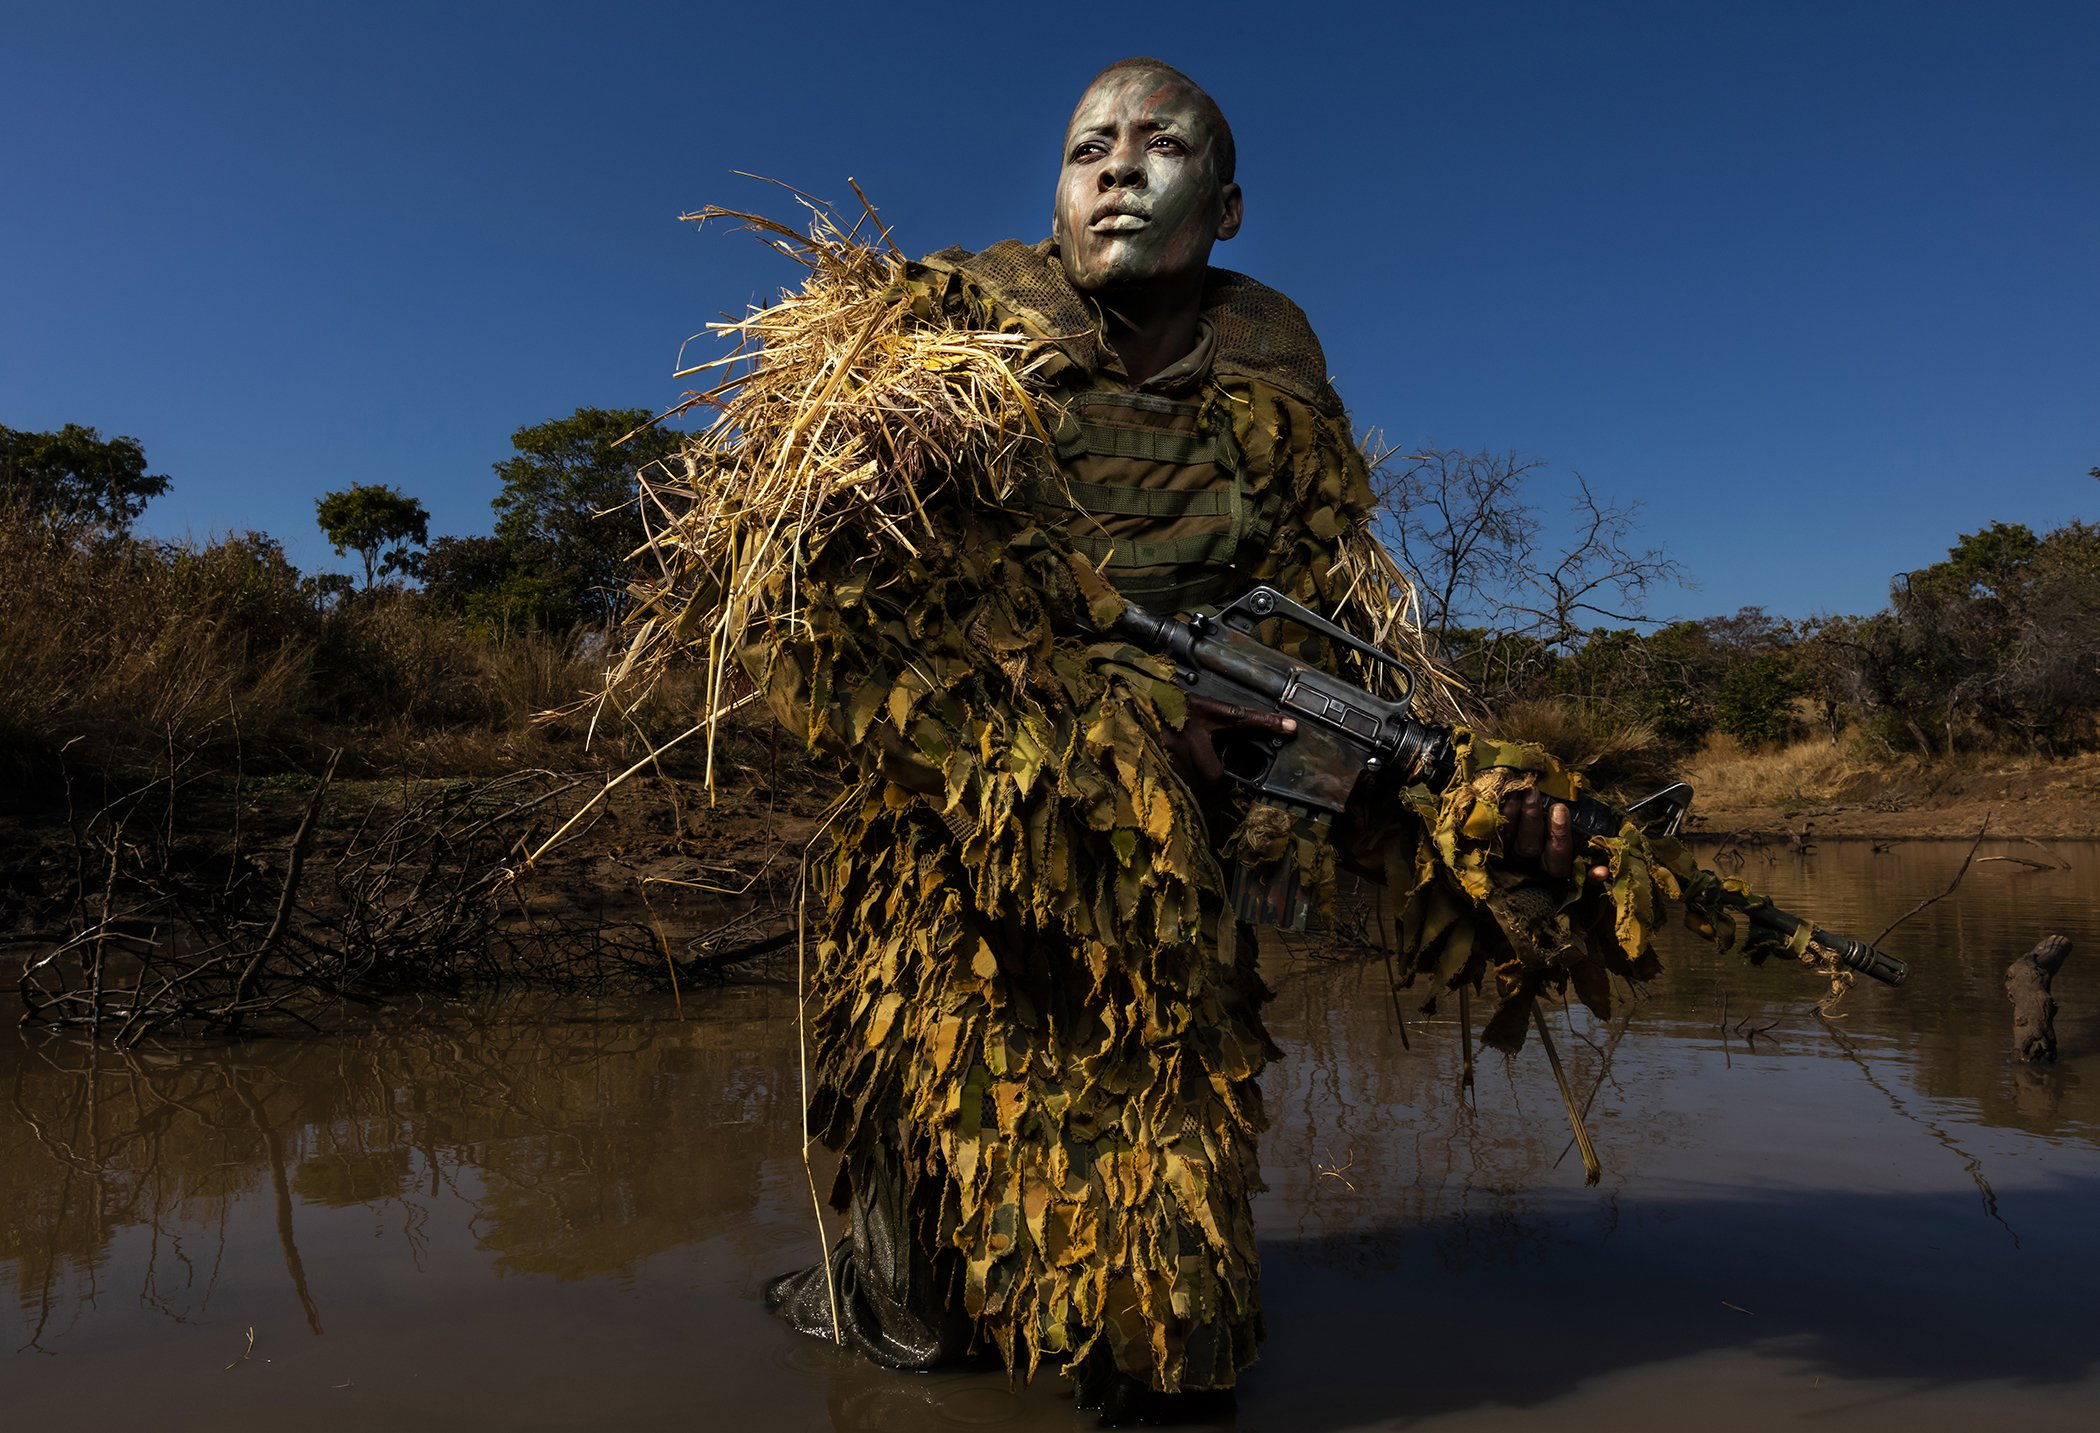 006_Brent Stirton_Getty Images.jpg